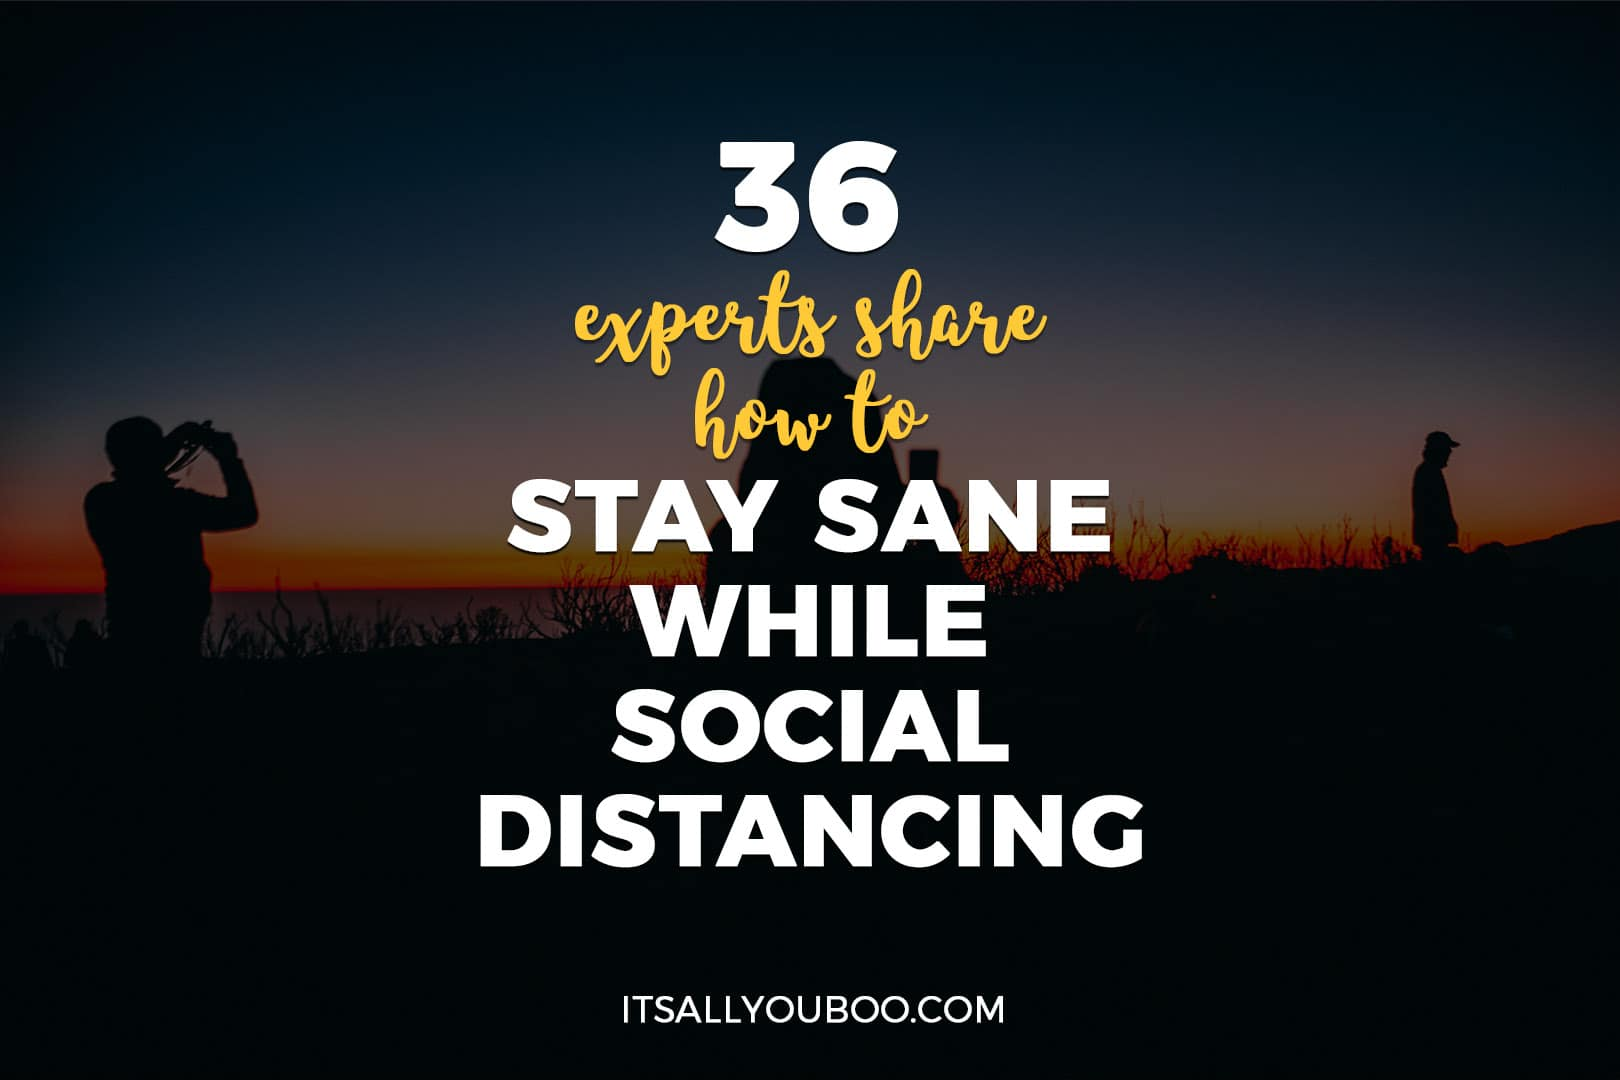 36 Experts Share How to Stay Sane While Social Distancing